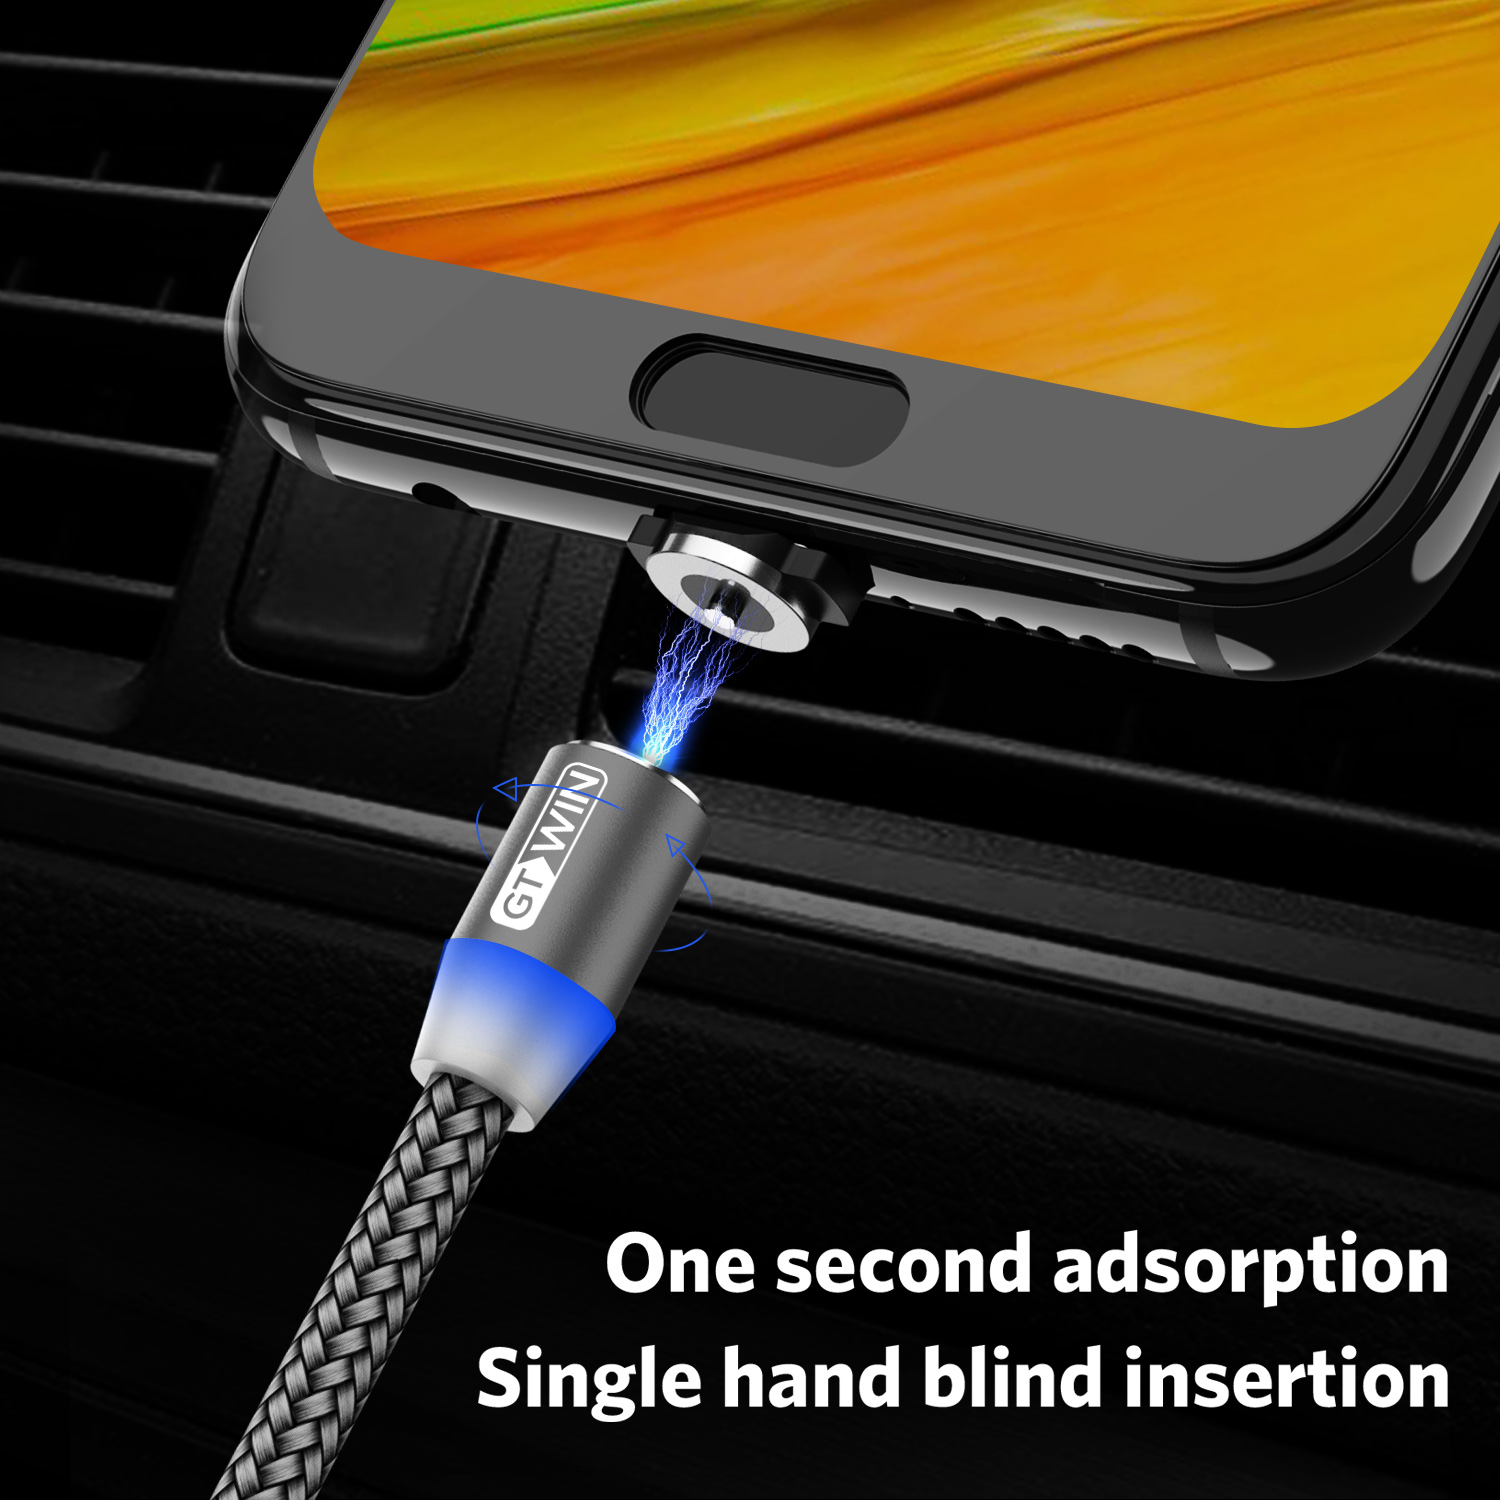 GTWIN Magnetic USB Cable For Iphone Type C Fast Charging Cord For Samsung S10 S9 Note 8 Magnet Micro Plug Wire For Xiaomi Huawei in Mobile Phone Cables from Cellphones Telecommunications